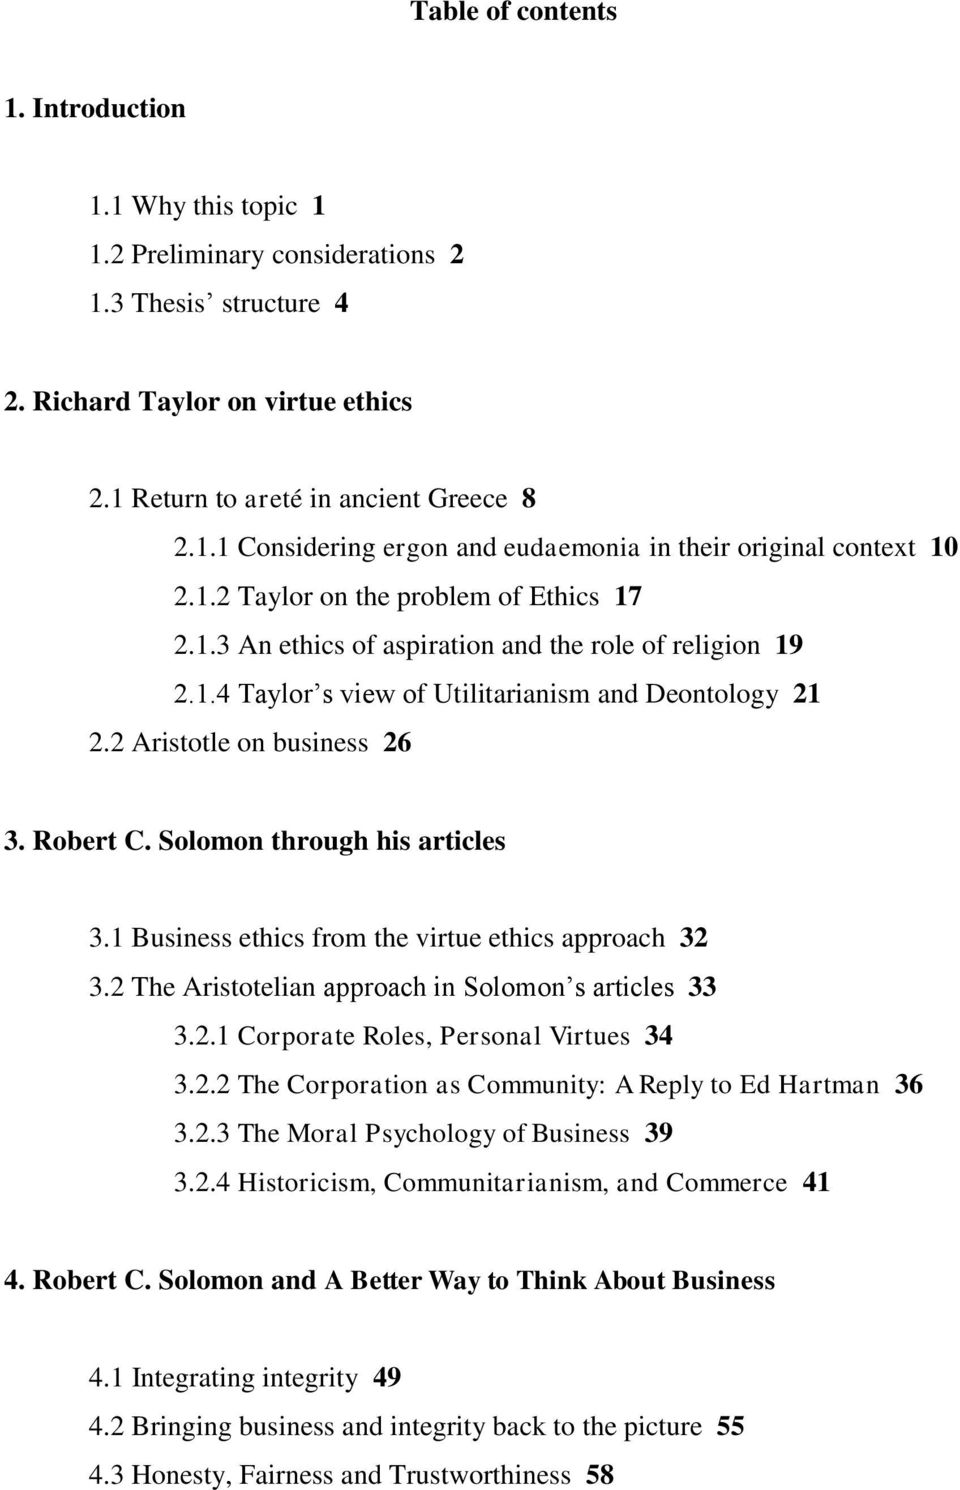 journal of business ethics articles pdf